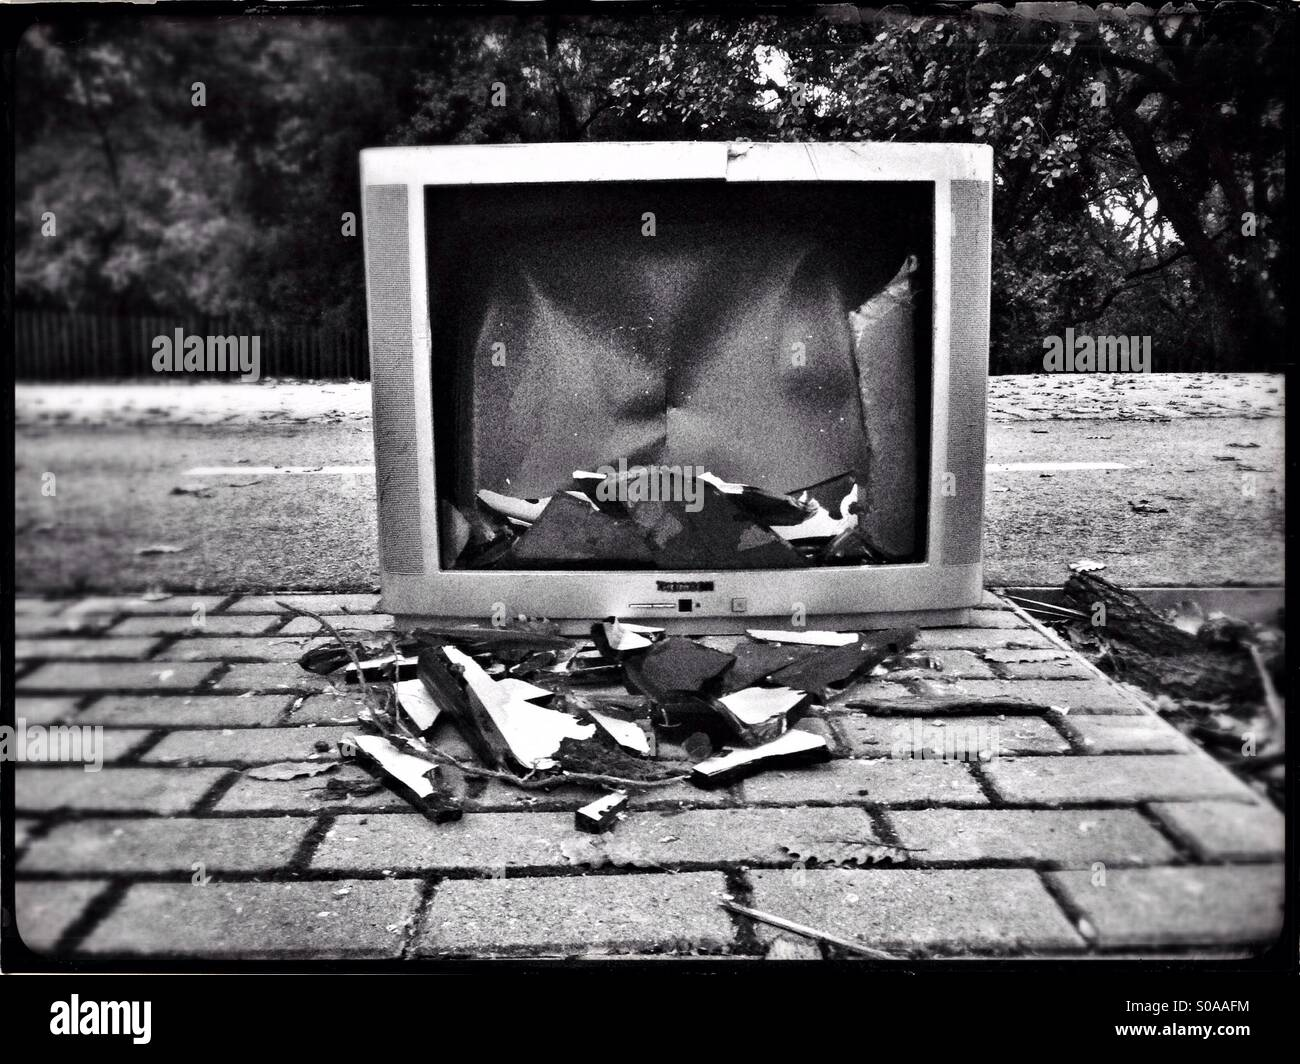 Tv and destruction - Stock Image